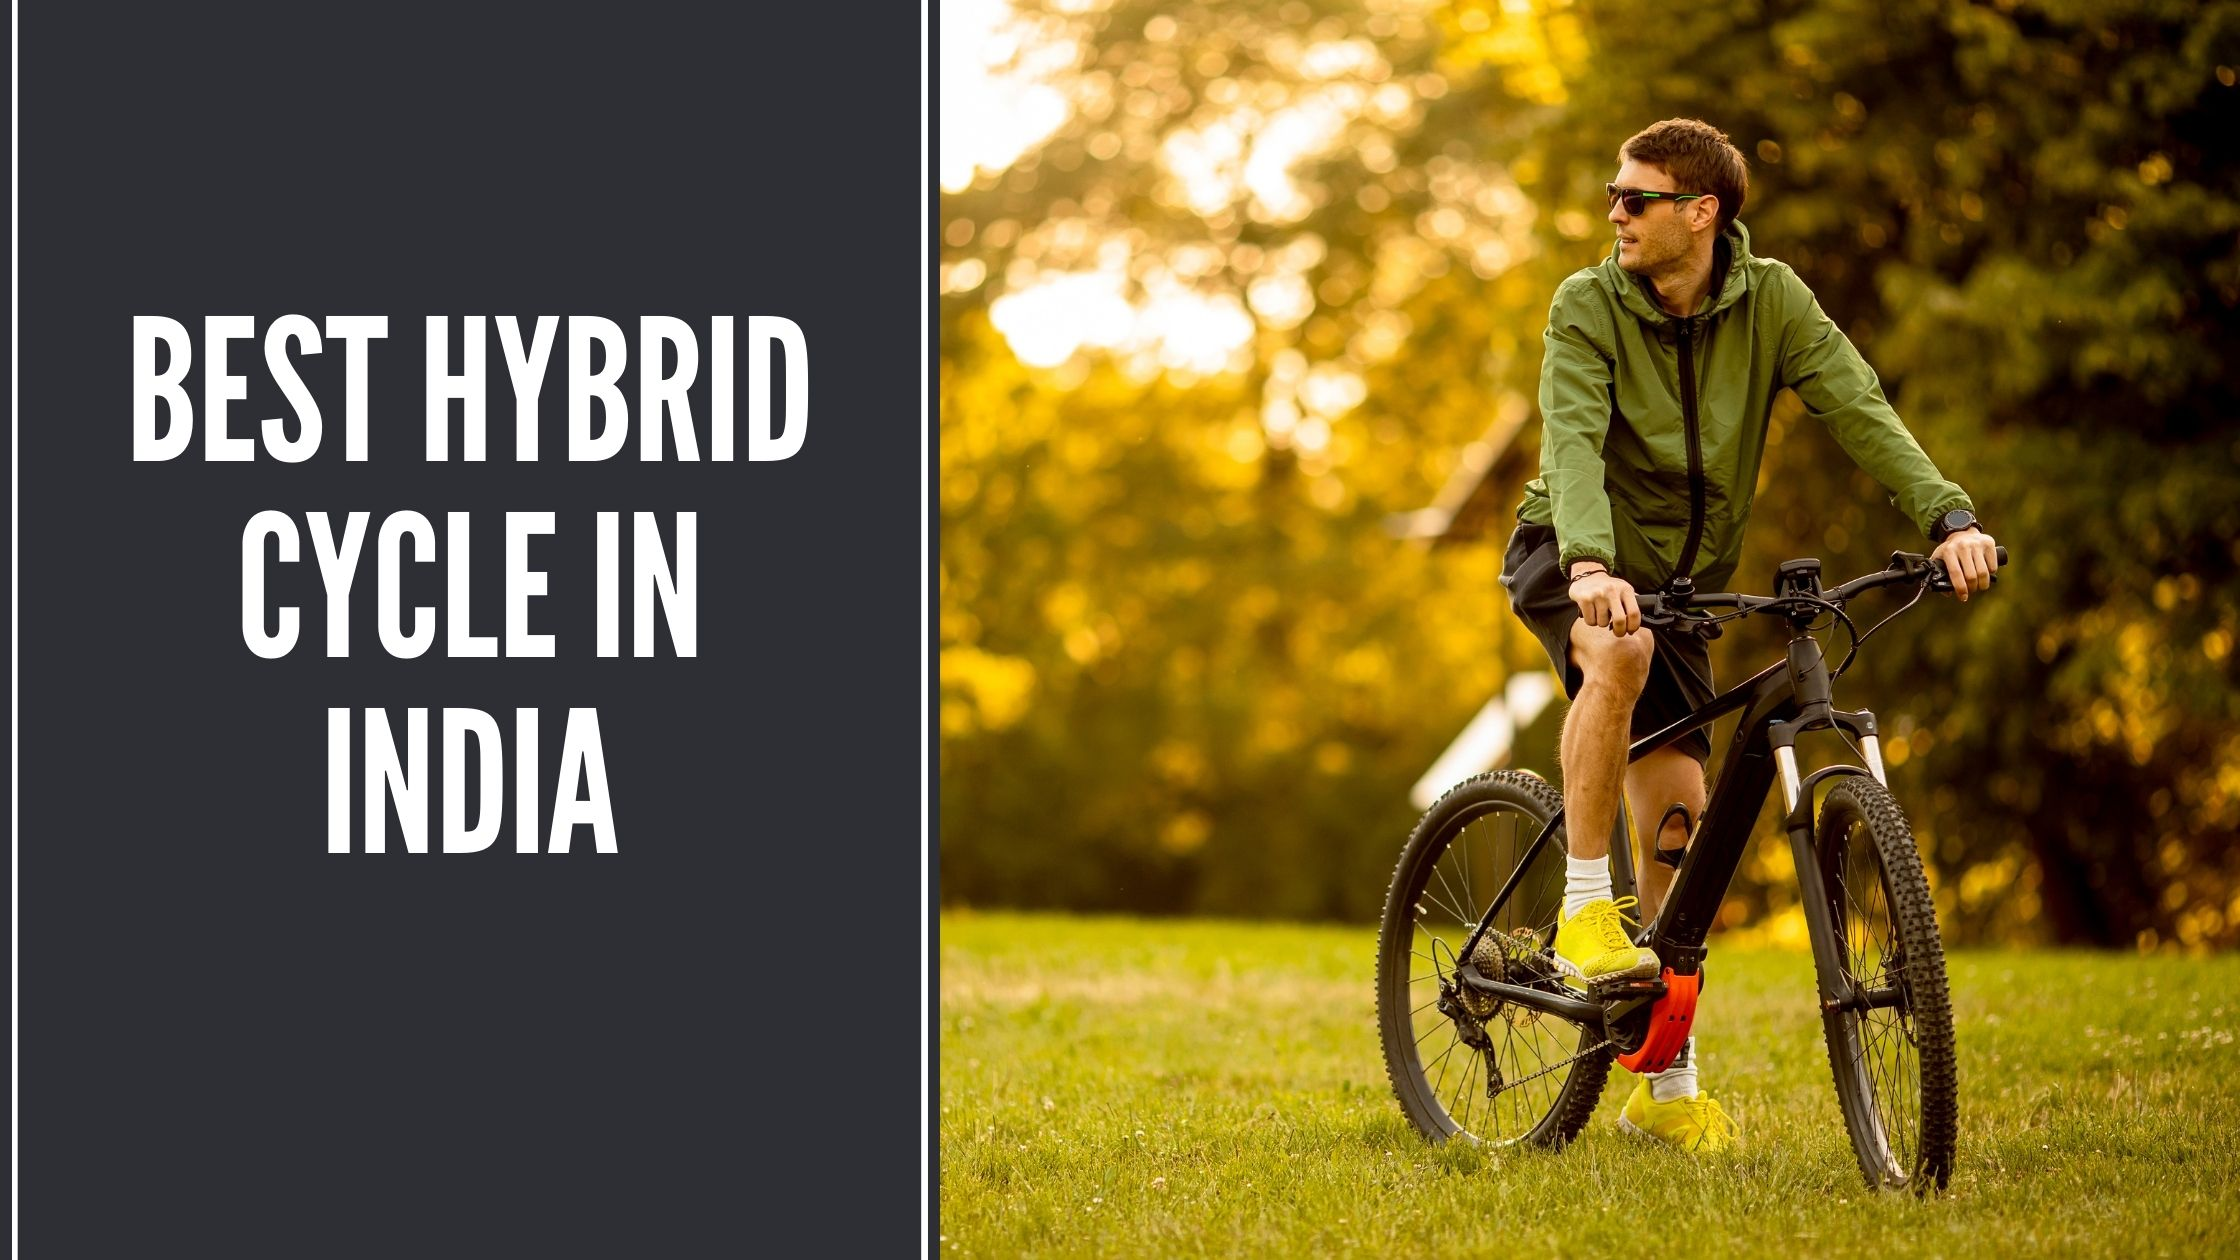 Best Hybrid Cycle in India